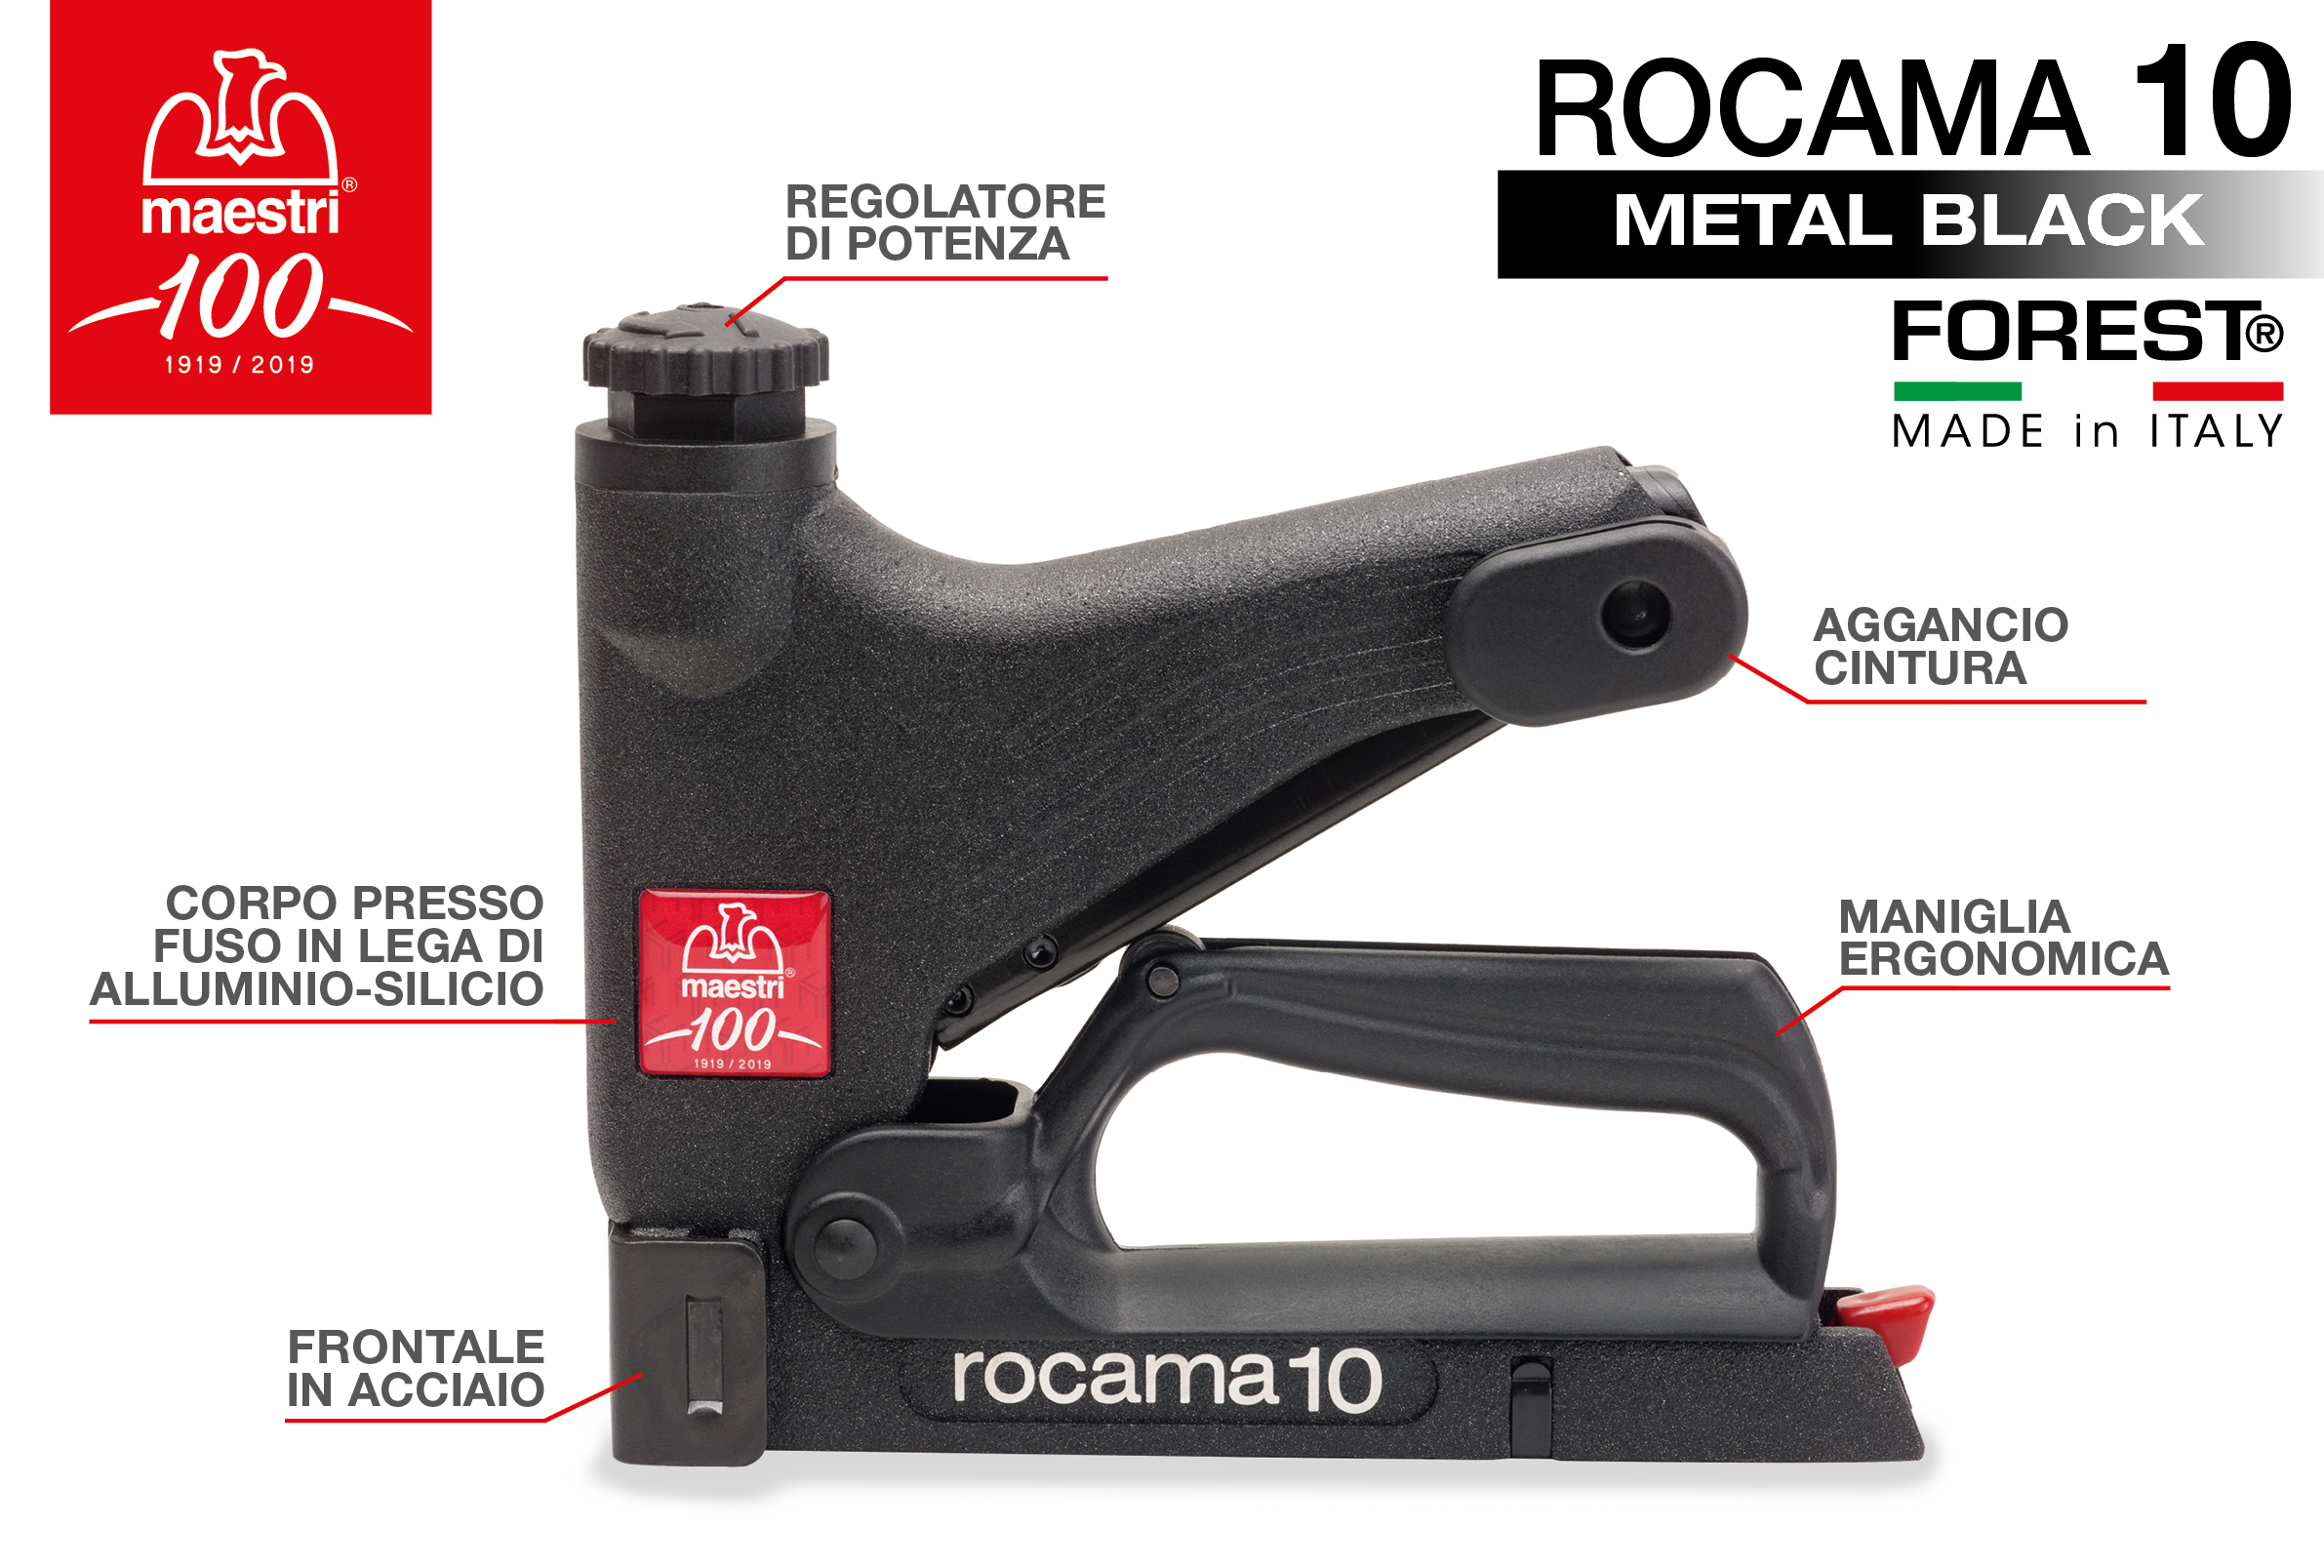 ROCAMA 10 METAL BLACK